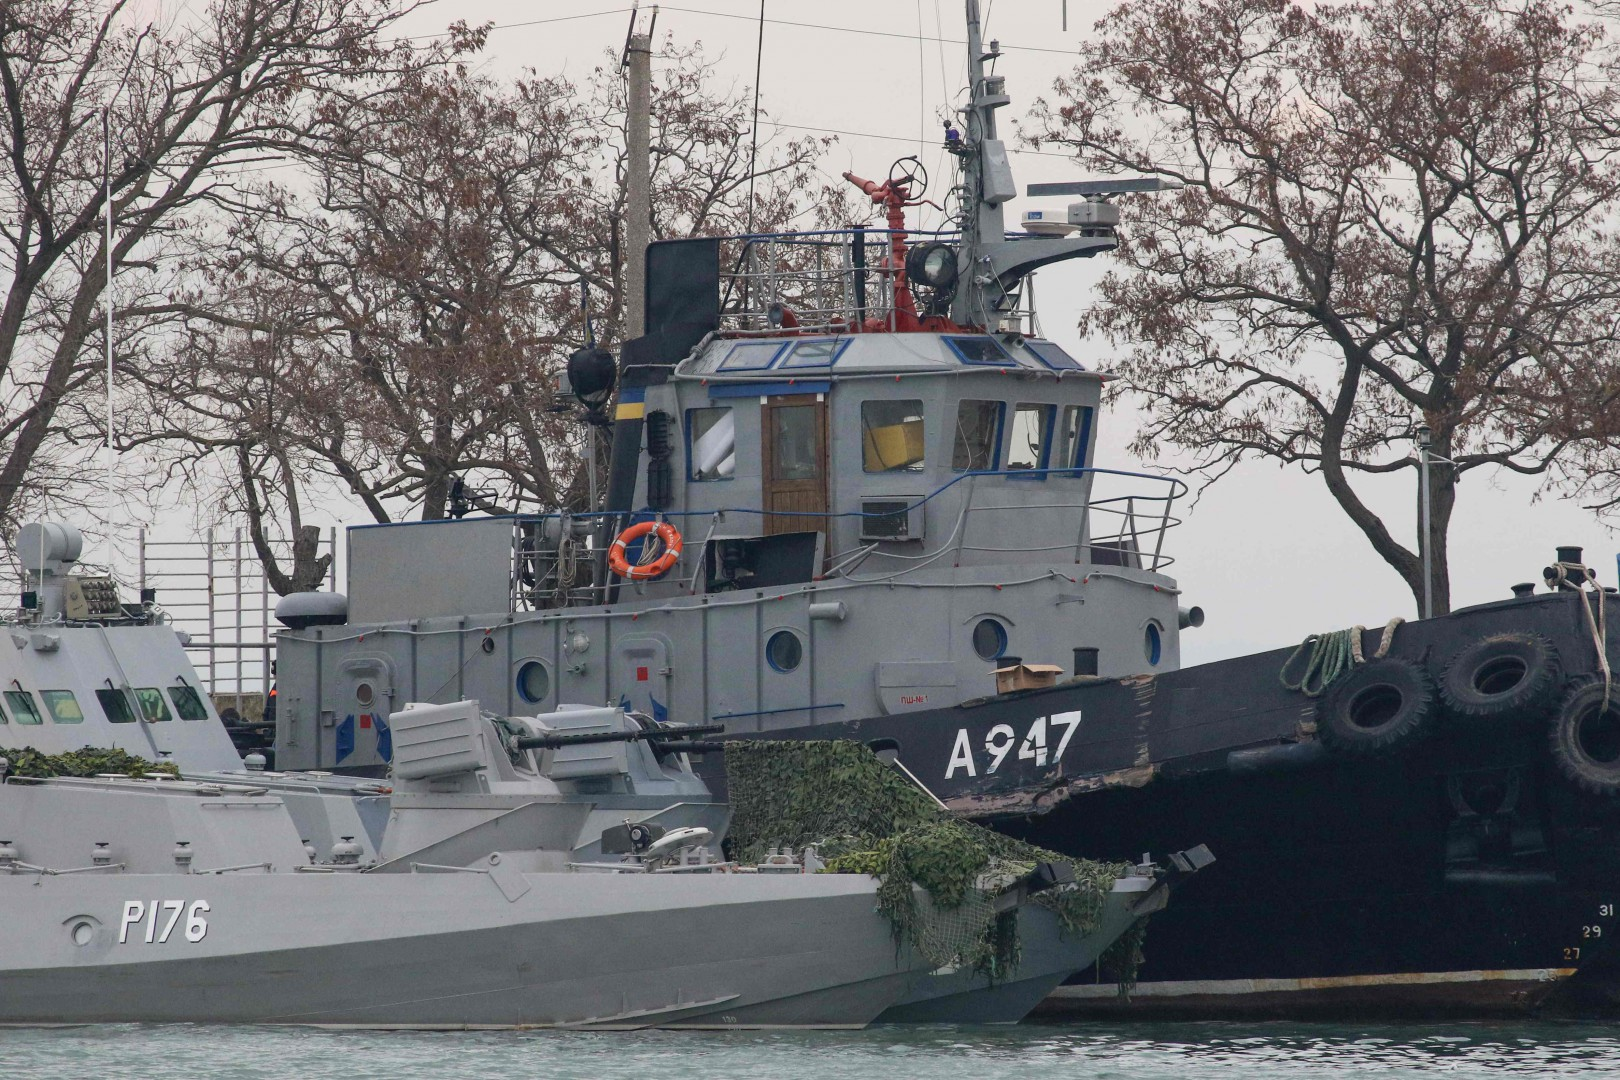 Seized Ukrainian military vessels are seen in a port of Kerch, Crimea, on November 26, 2018. - Kiev and Moscow faced their worst crisis in years on November 26, 2018 as Ukraine and its Western allies demanded the release of three ships fired on and seized by Russia near Crimea. Russian forces boarded and captured the ships on Sunday, with Moscow accusing the vessels of illegally entering Russian waters off the coast of Crimea in the Sea of Azov. (Photo by STR / AFP)